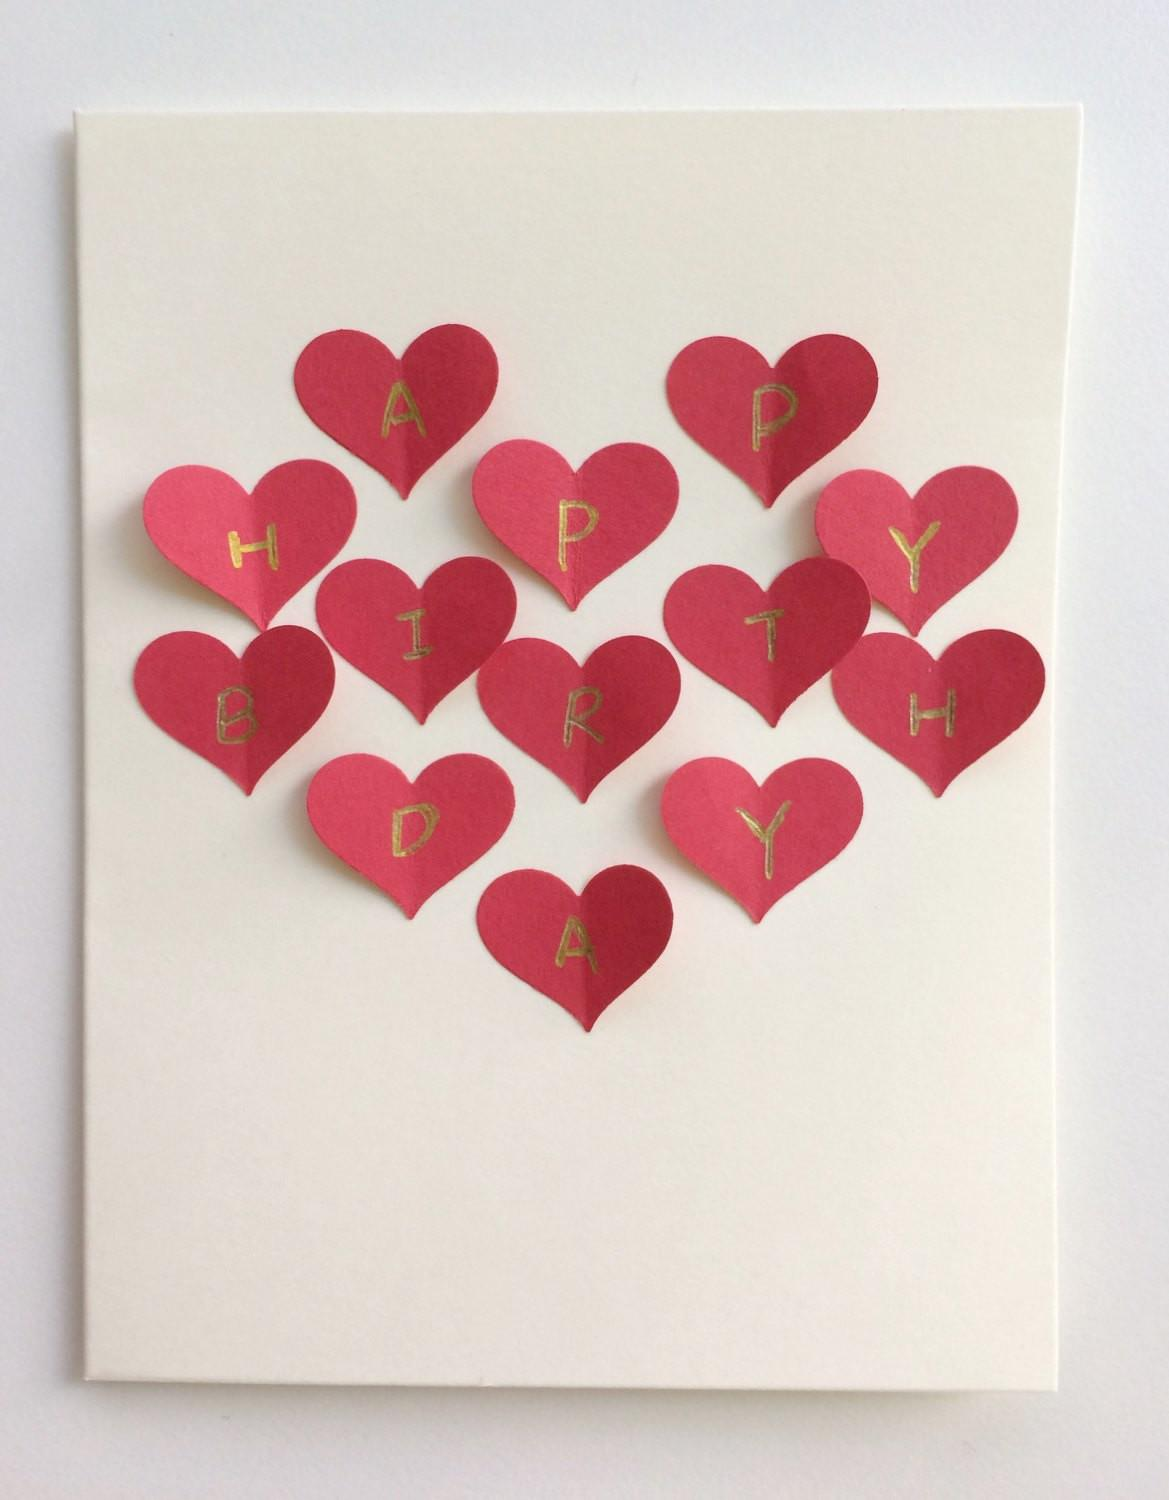 Red Heart Collage Handmade Postcard Card Romantic Gift